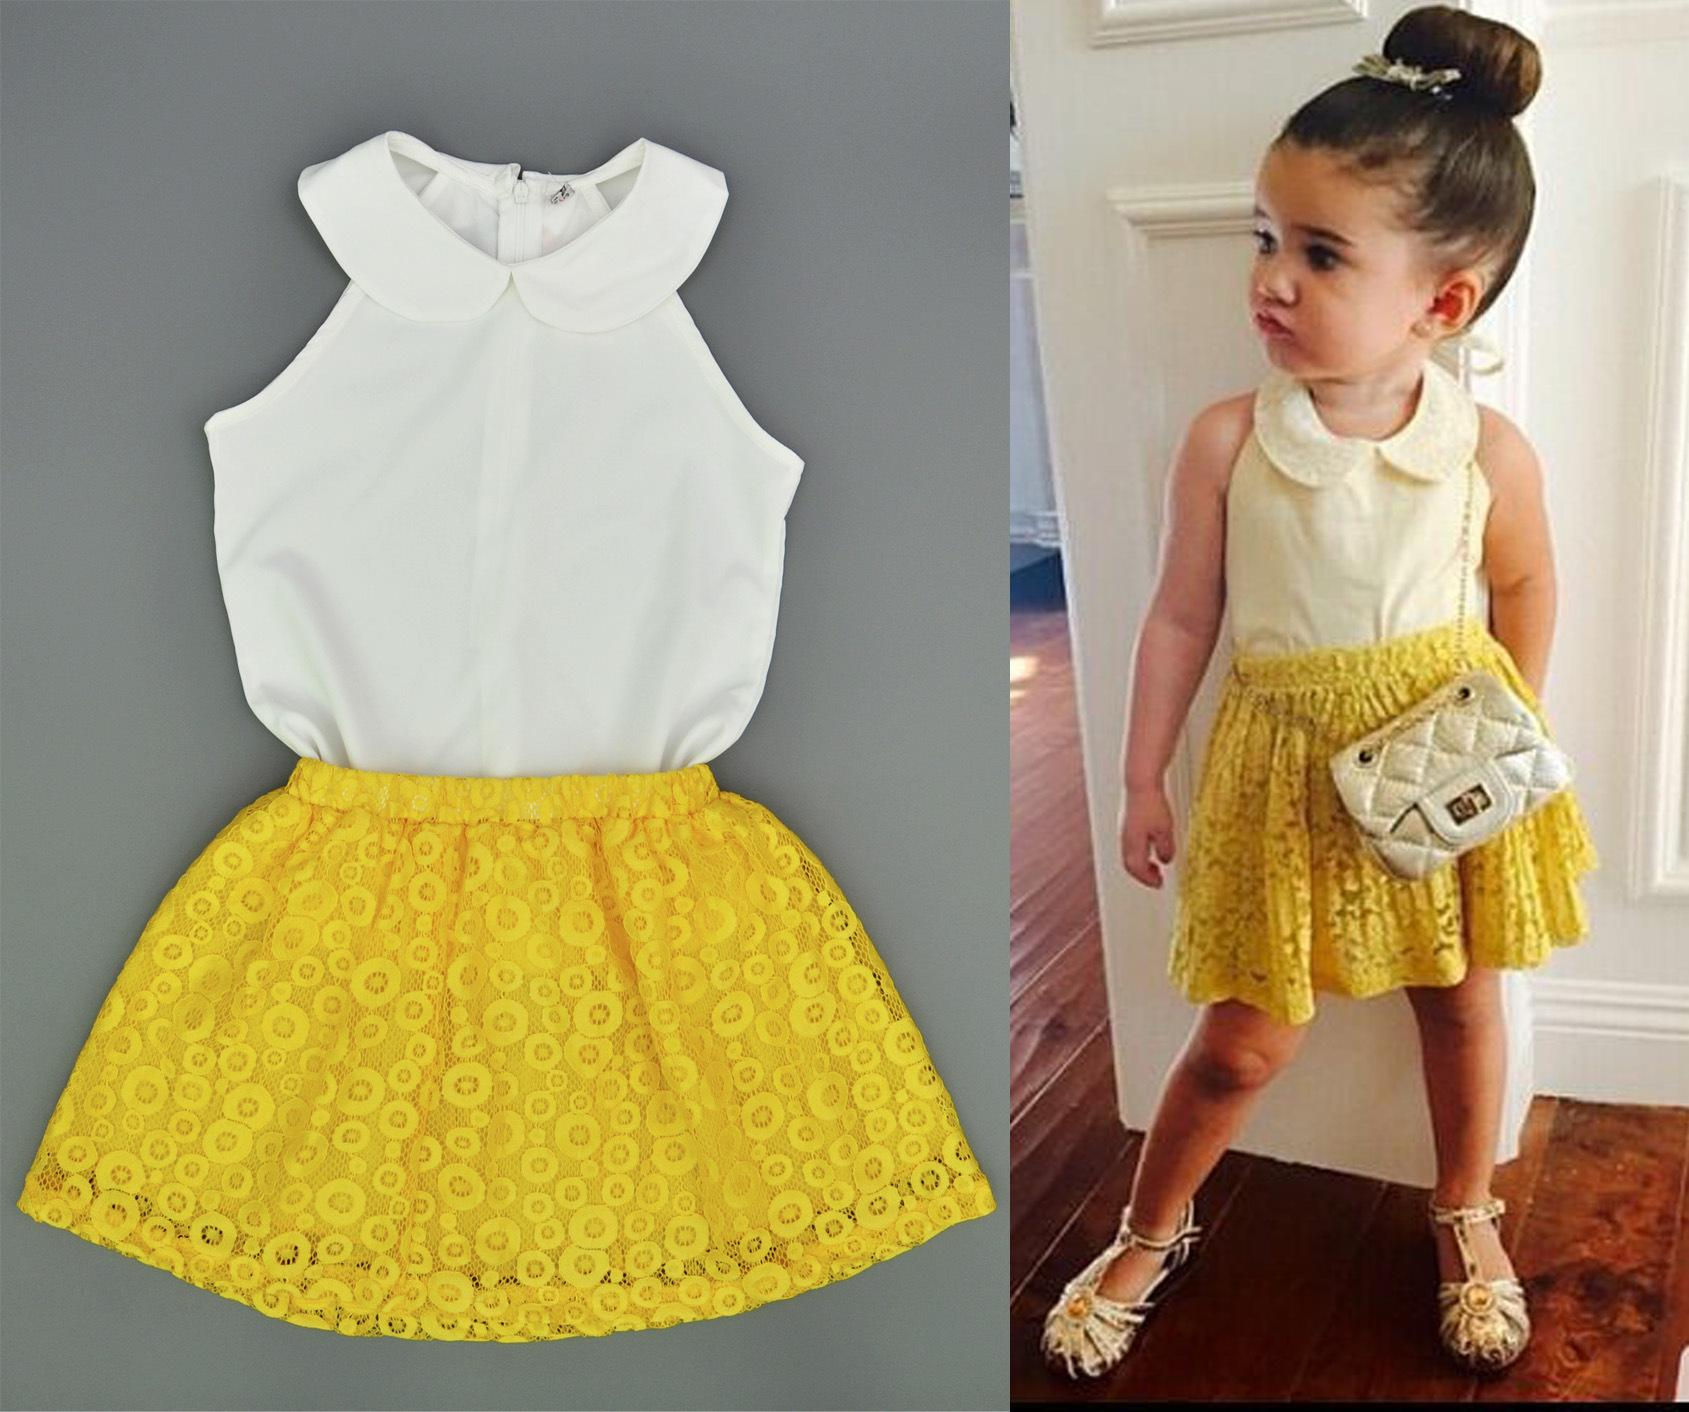 2018 Summer Baby Girl Clothes Sets Sleeveless White Chiffon Shirts+ ... 79d15948081a